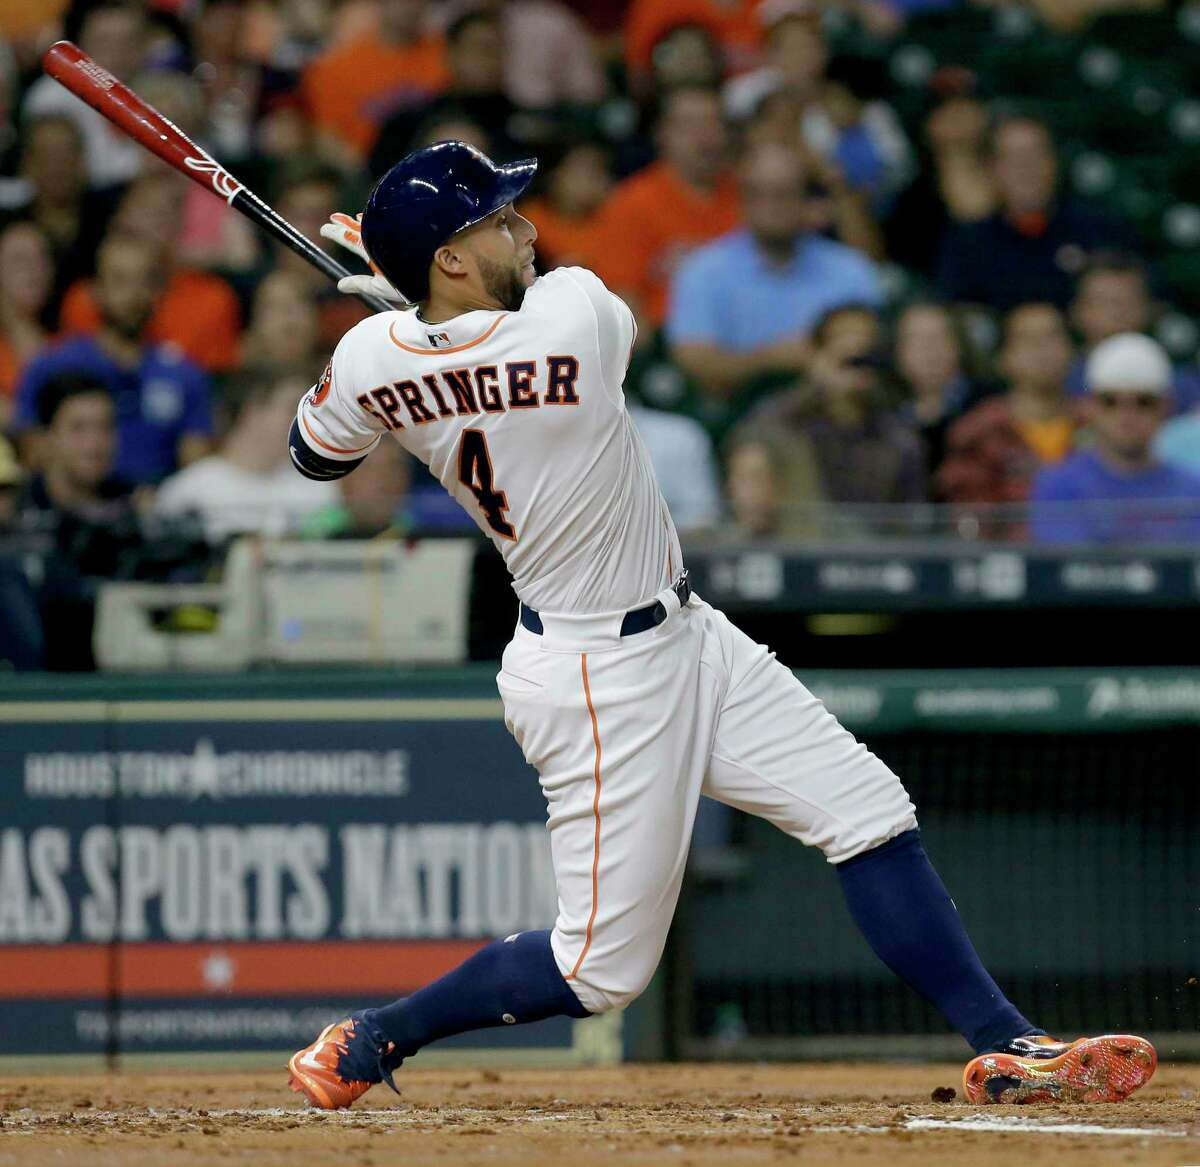 Houston Astros George Springer hits a RBI single against the Texas Rangers during the second inning at Minute Maid Park Wednesday, May 3, 2017, in Houston. Alex Bregman scored on the hit.